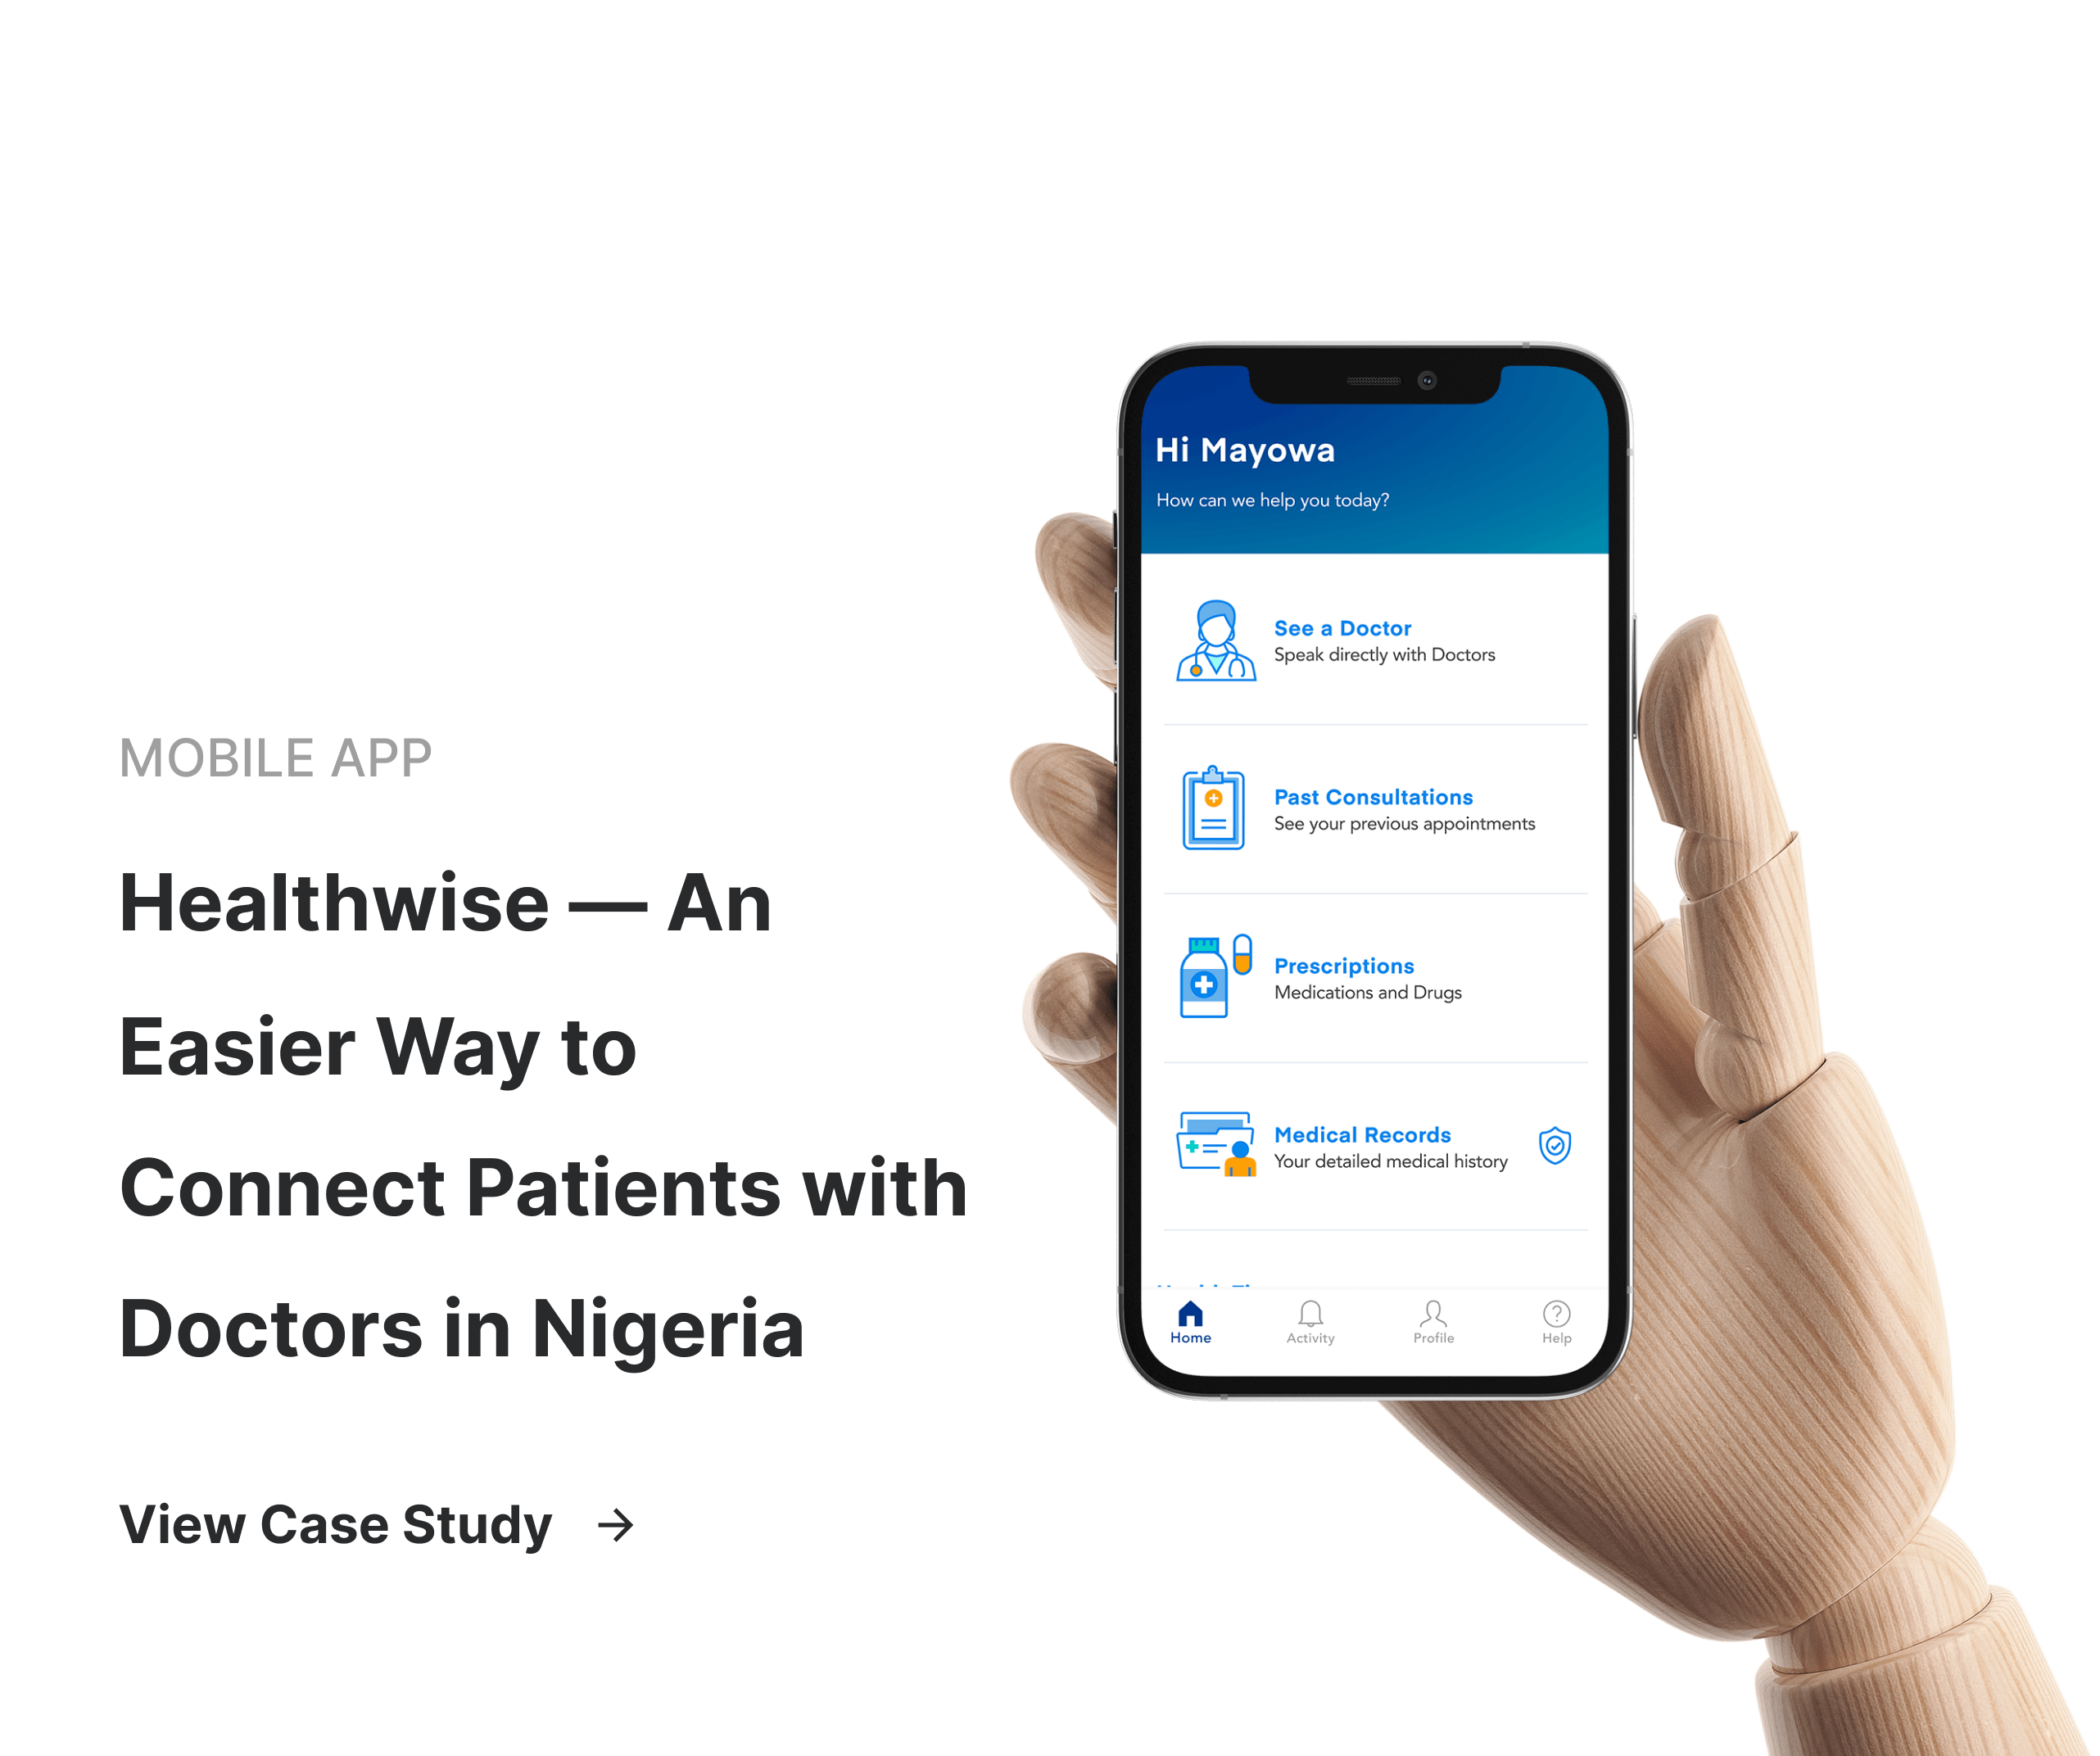 Healthwise — An Easier Way to Connect Patients with Doctors in Nigeria